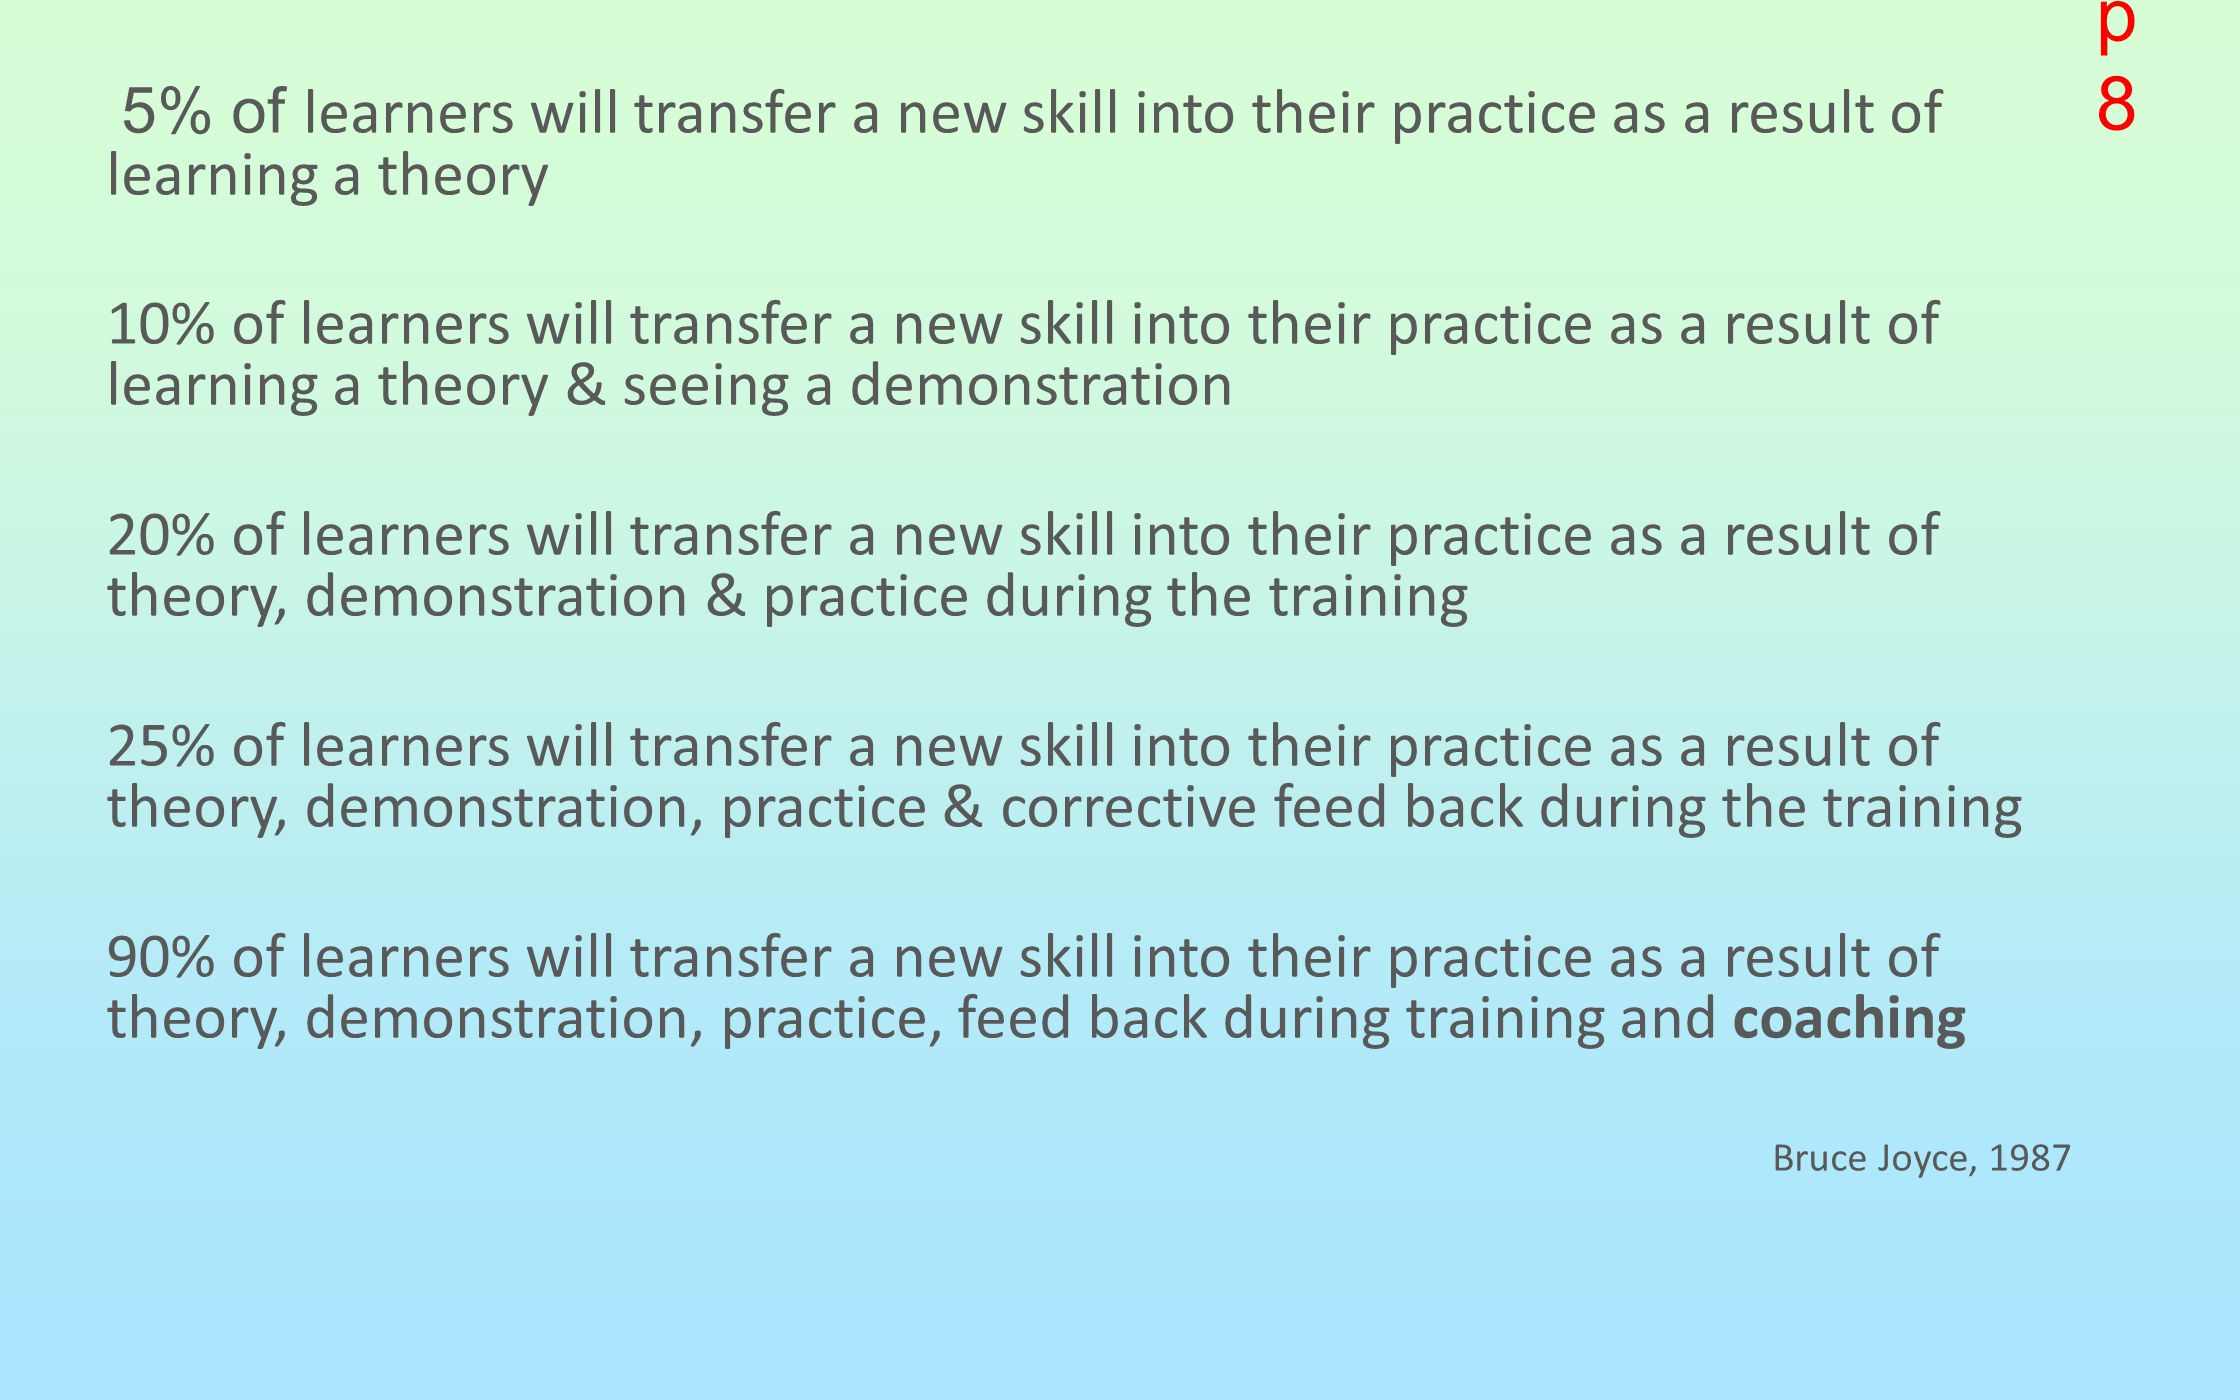 p8 5% of learners will transfer a new skill into their practice as a result of learning a theory.